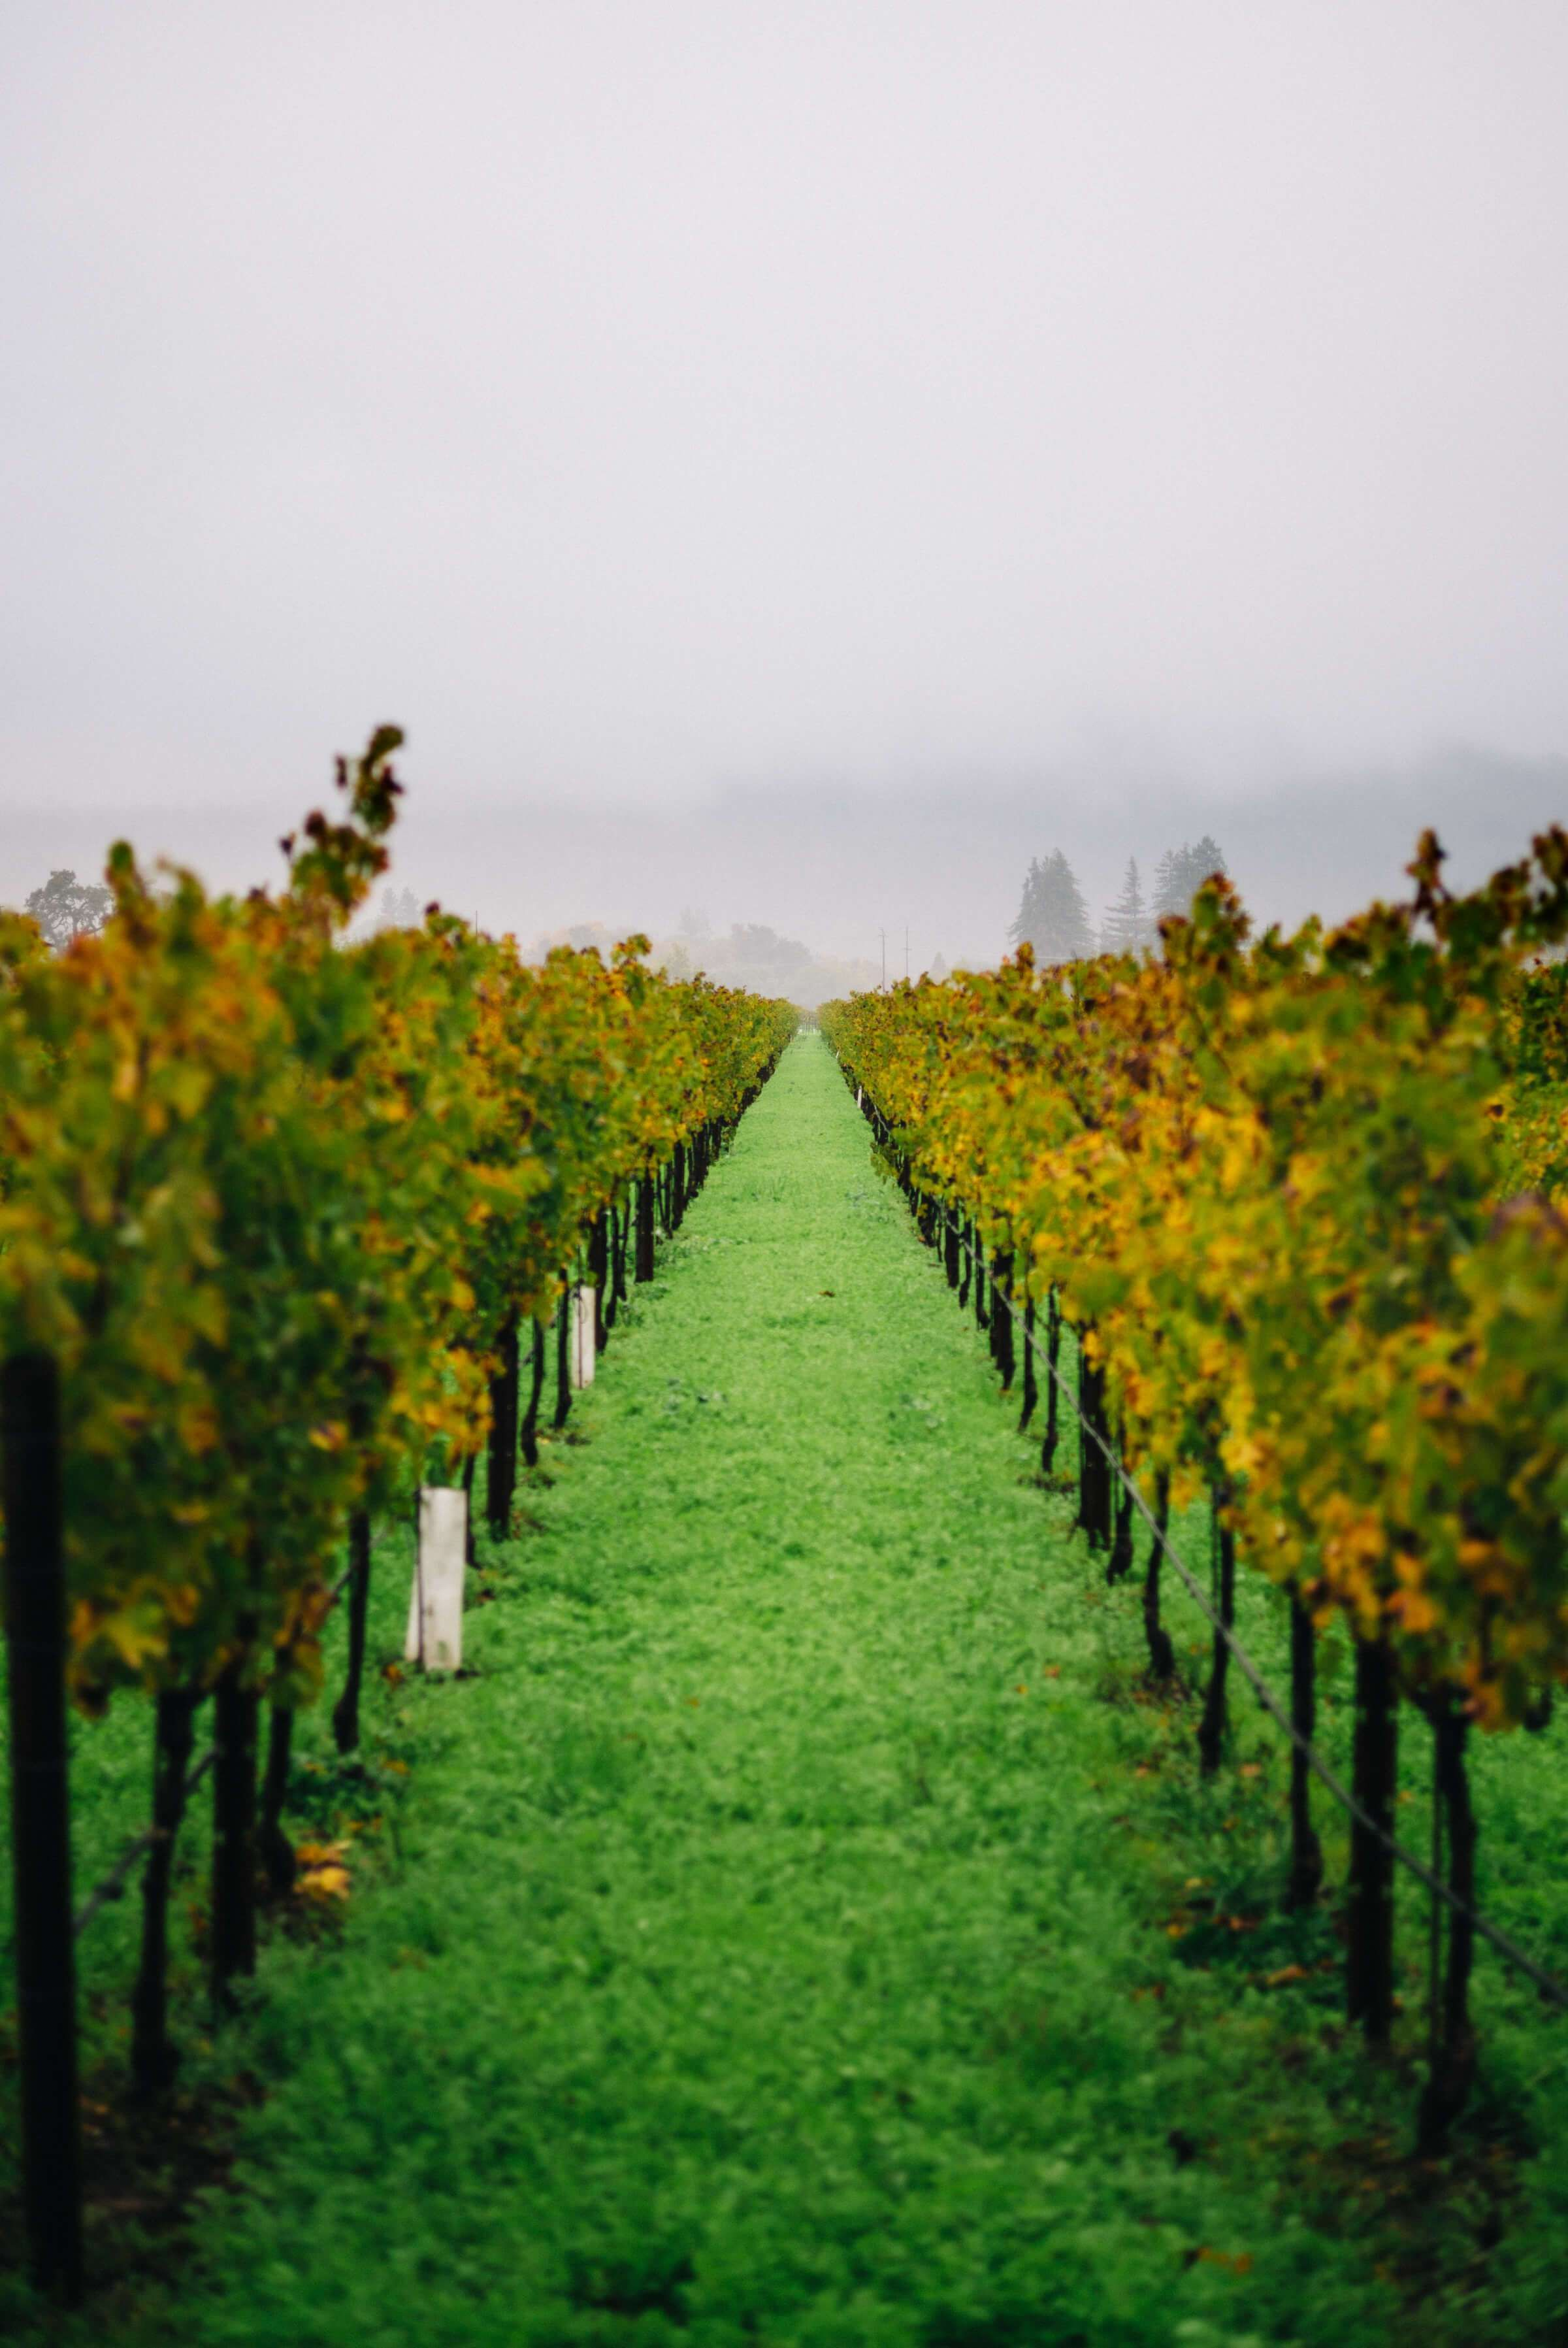 Insider S Guide To Napa Valley Plus Wine Tasting Guide Margaret River Wineries Napa Valley Wineries Napa Wineries